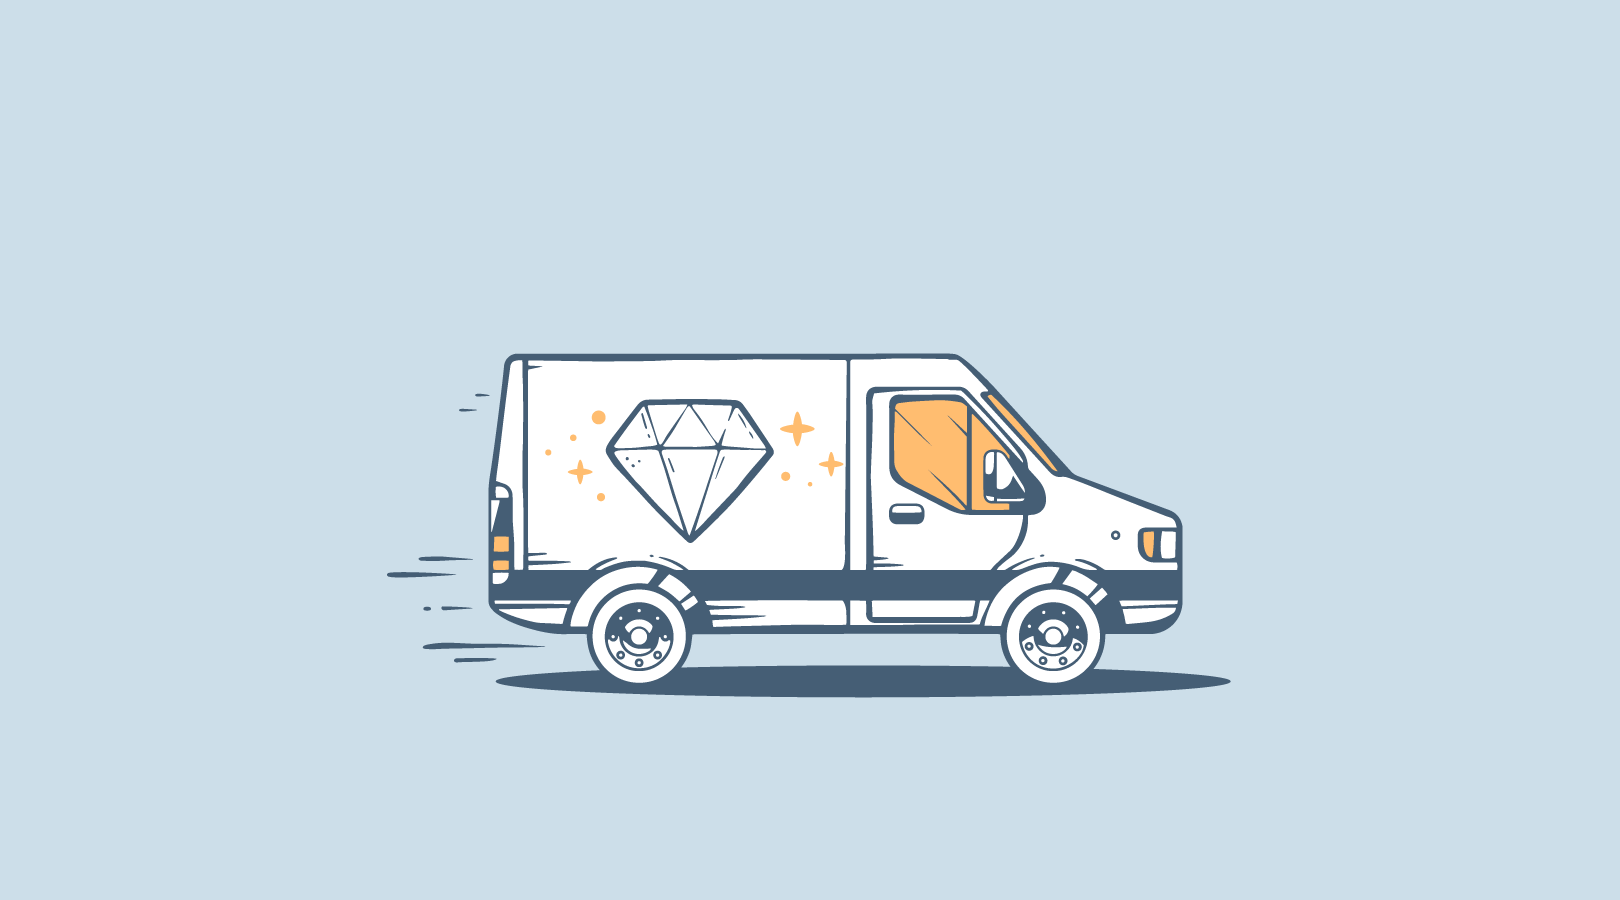 How to Ship Jewelry: Shipping Jewelry Safely and Cheaply